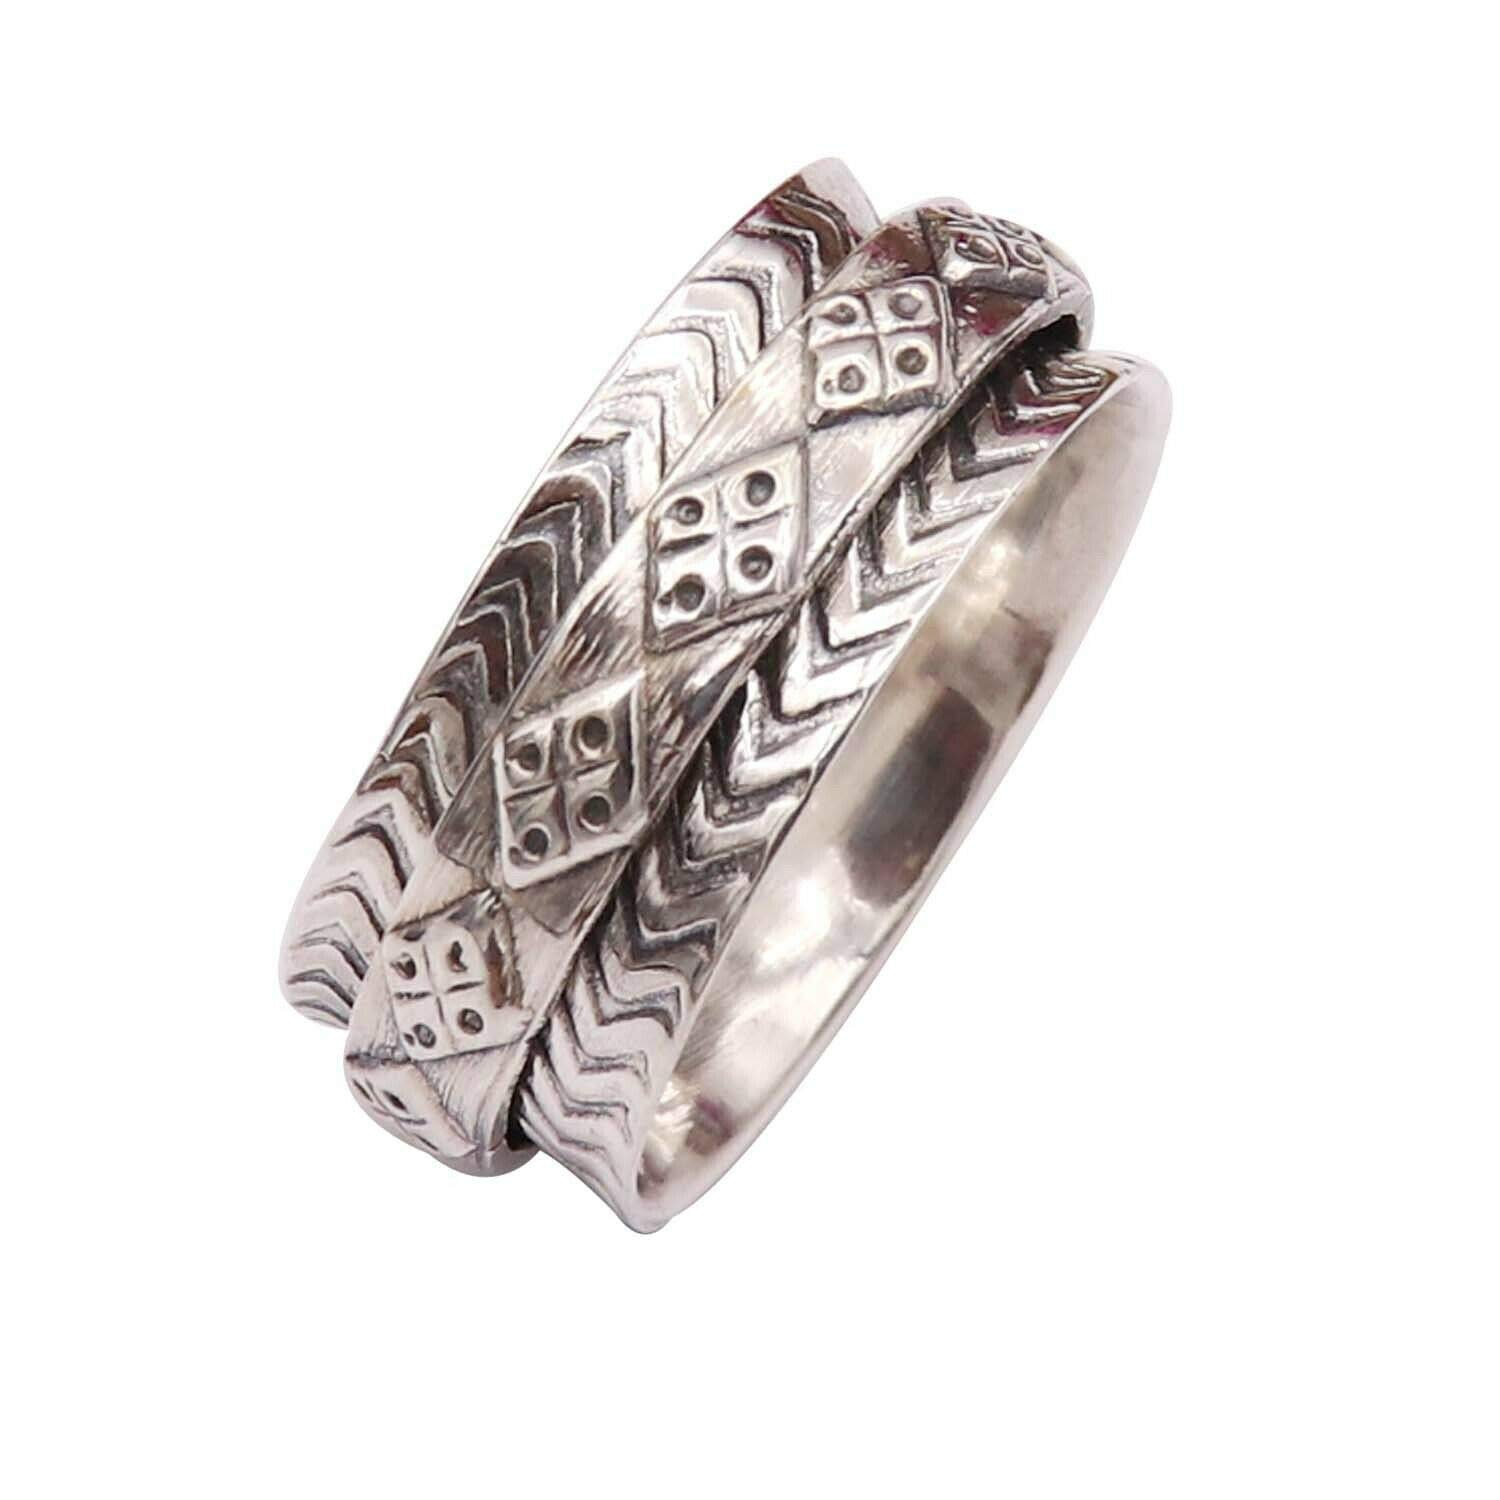 Gypsy Ring Spinner ring Wide Band Ring Anxiety Ring Most Popular Ring Thumb Ring Spinner Rings For Women Spinning Meditation Ring